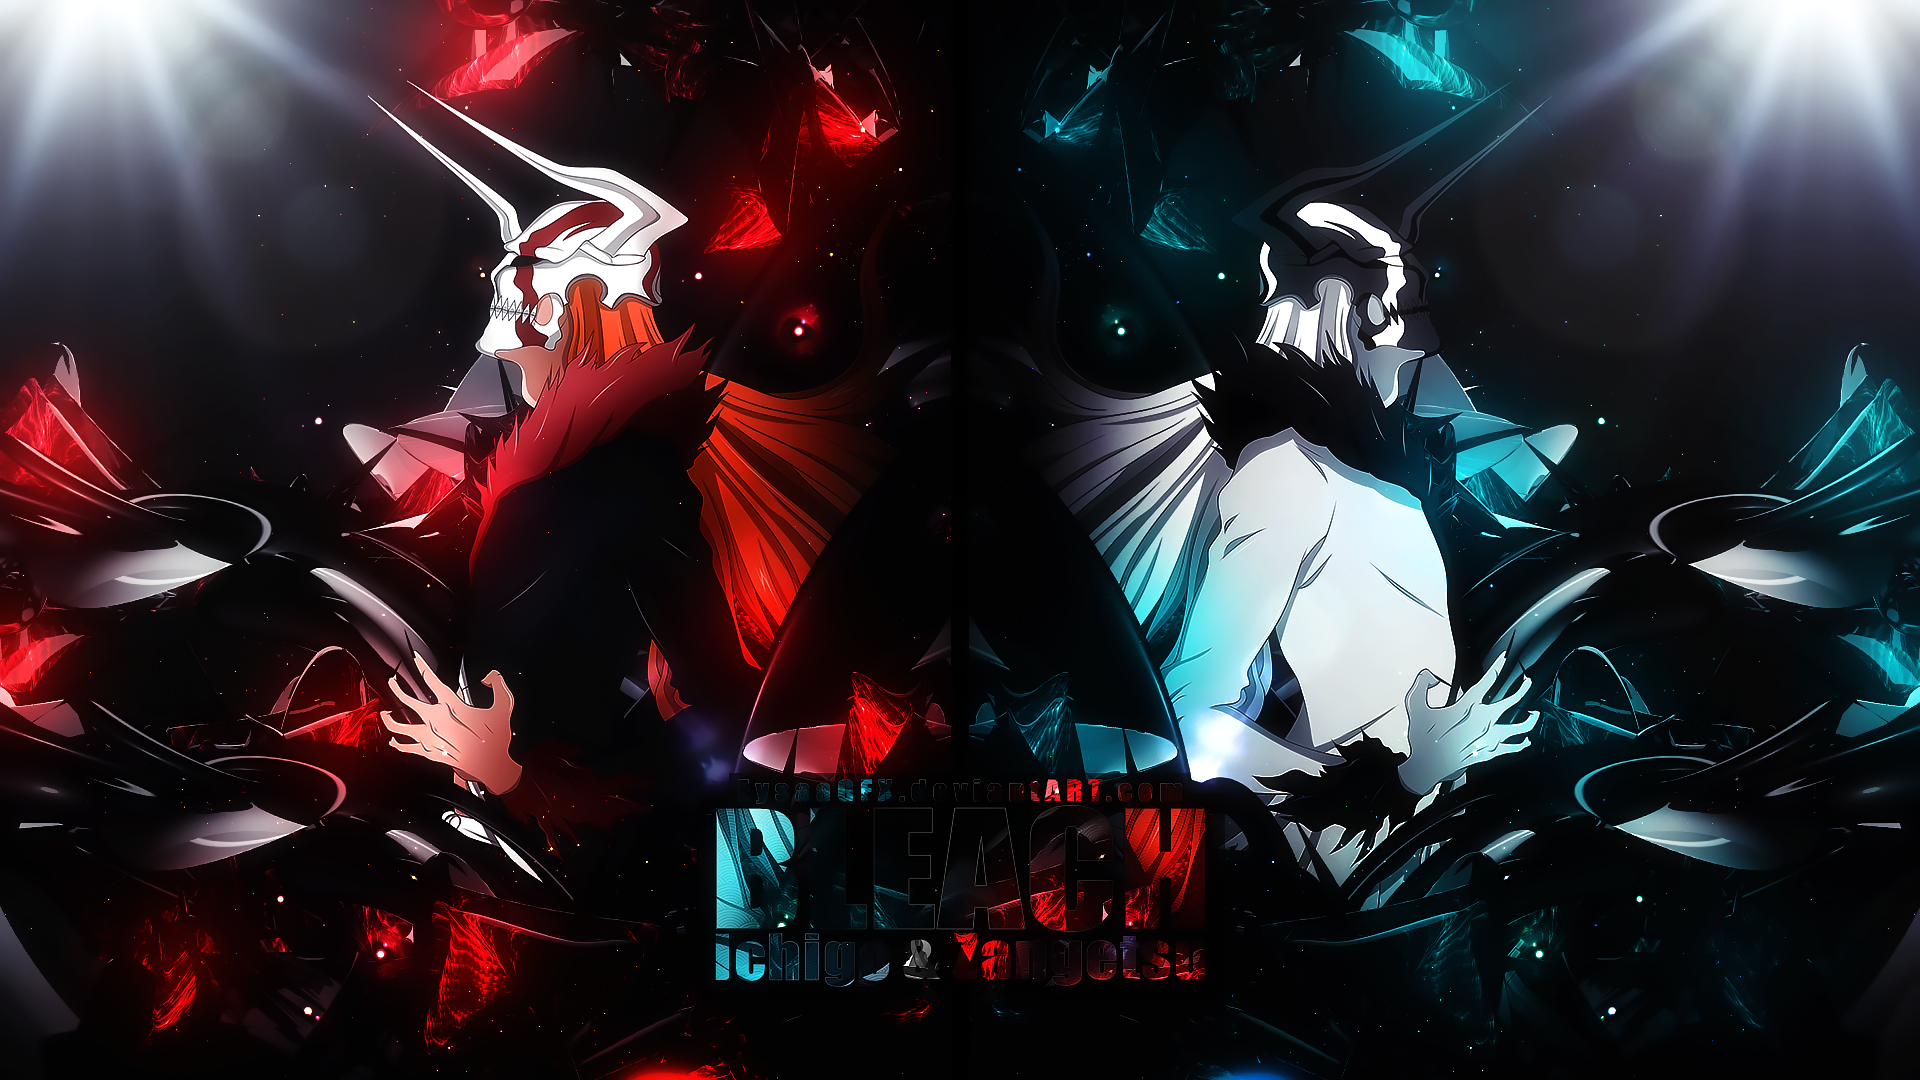 HD Bleach Anime Wallpaper Collection QuantumOtaku BLEACH